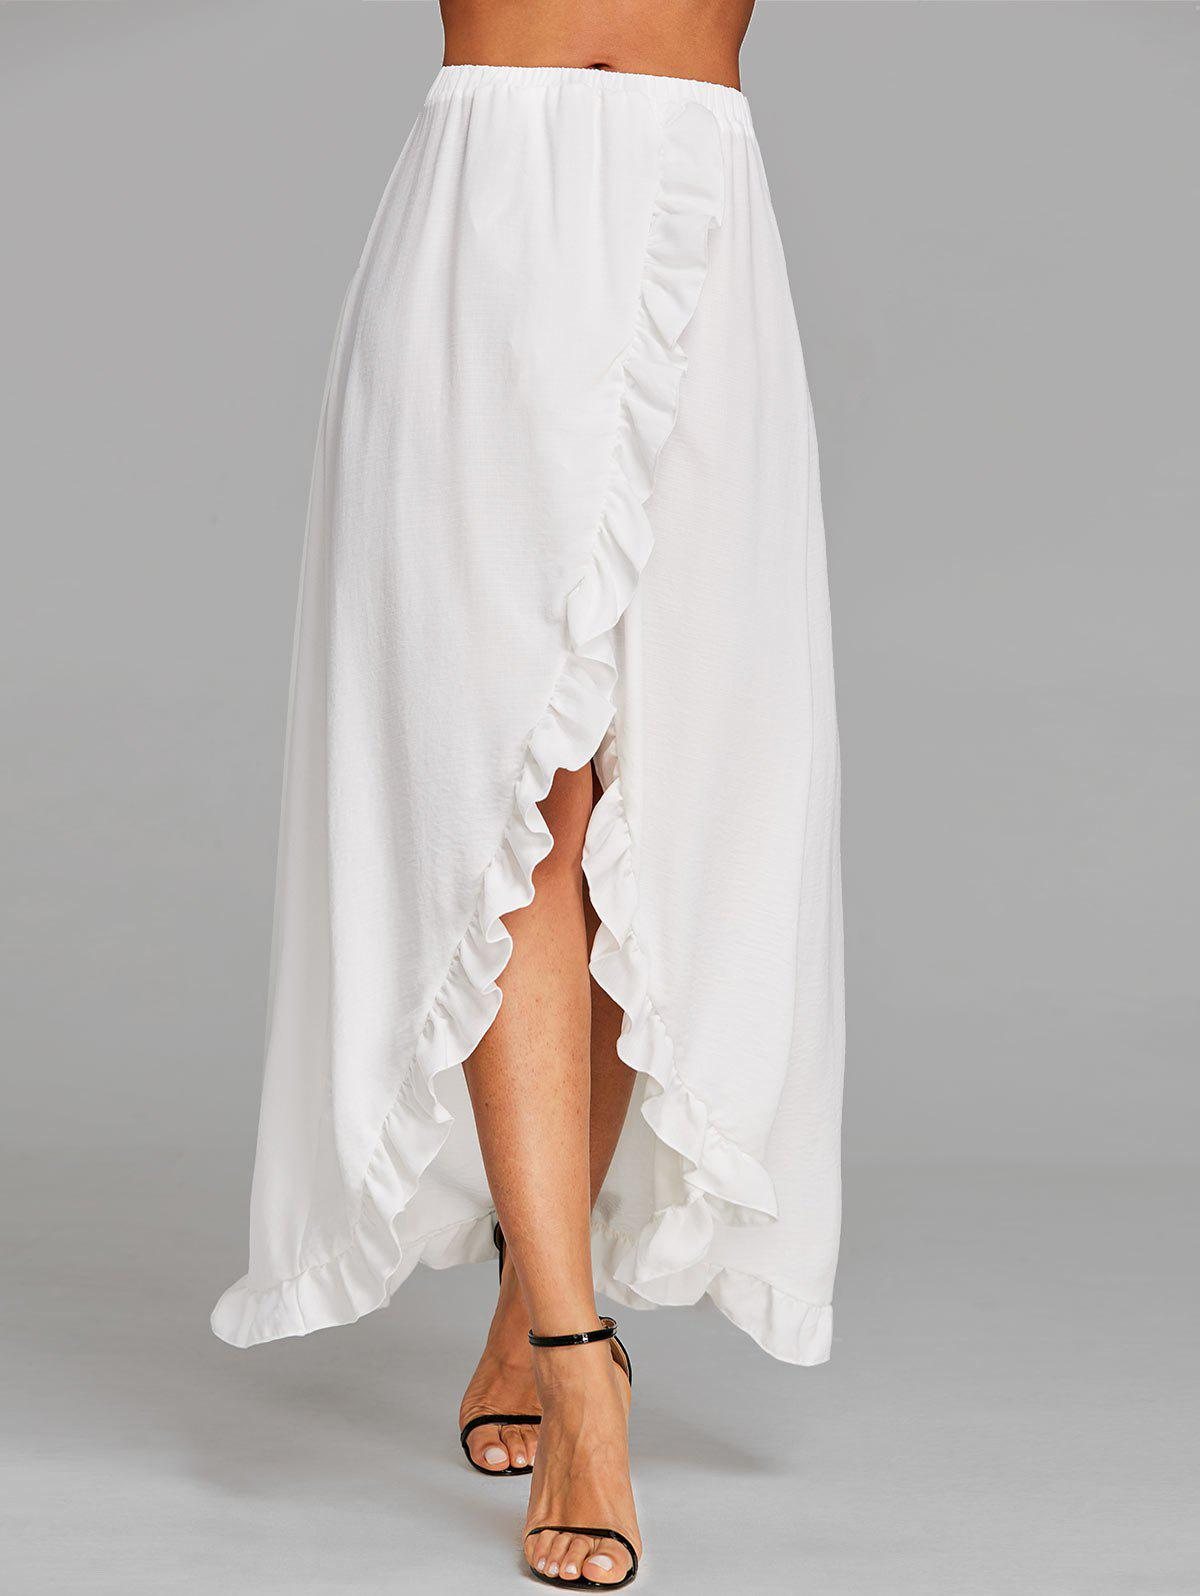 Ruffle Slit Maxi Skirt - WHITE XL